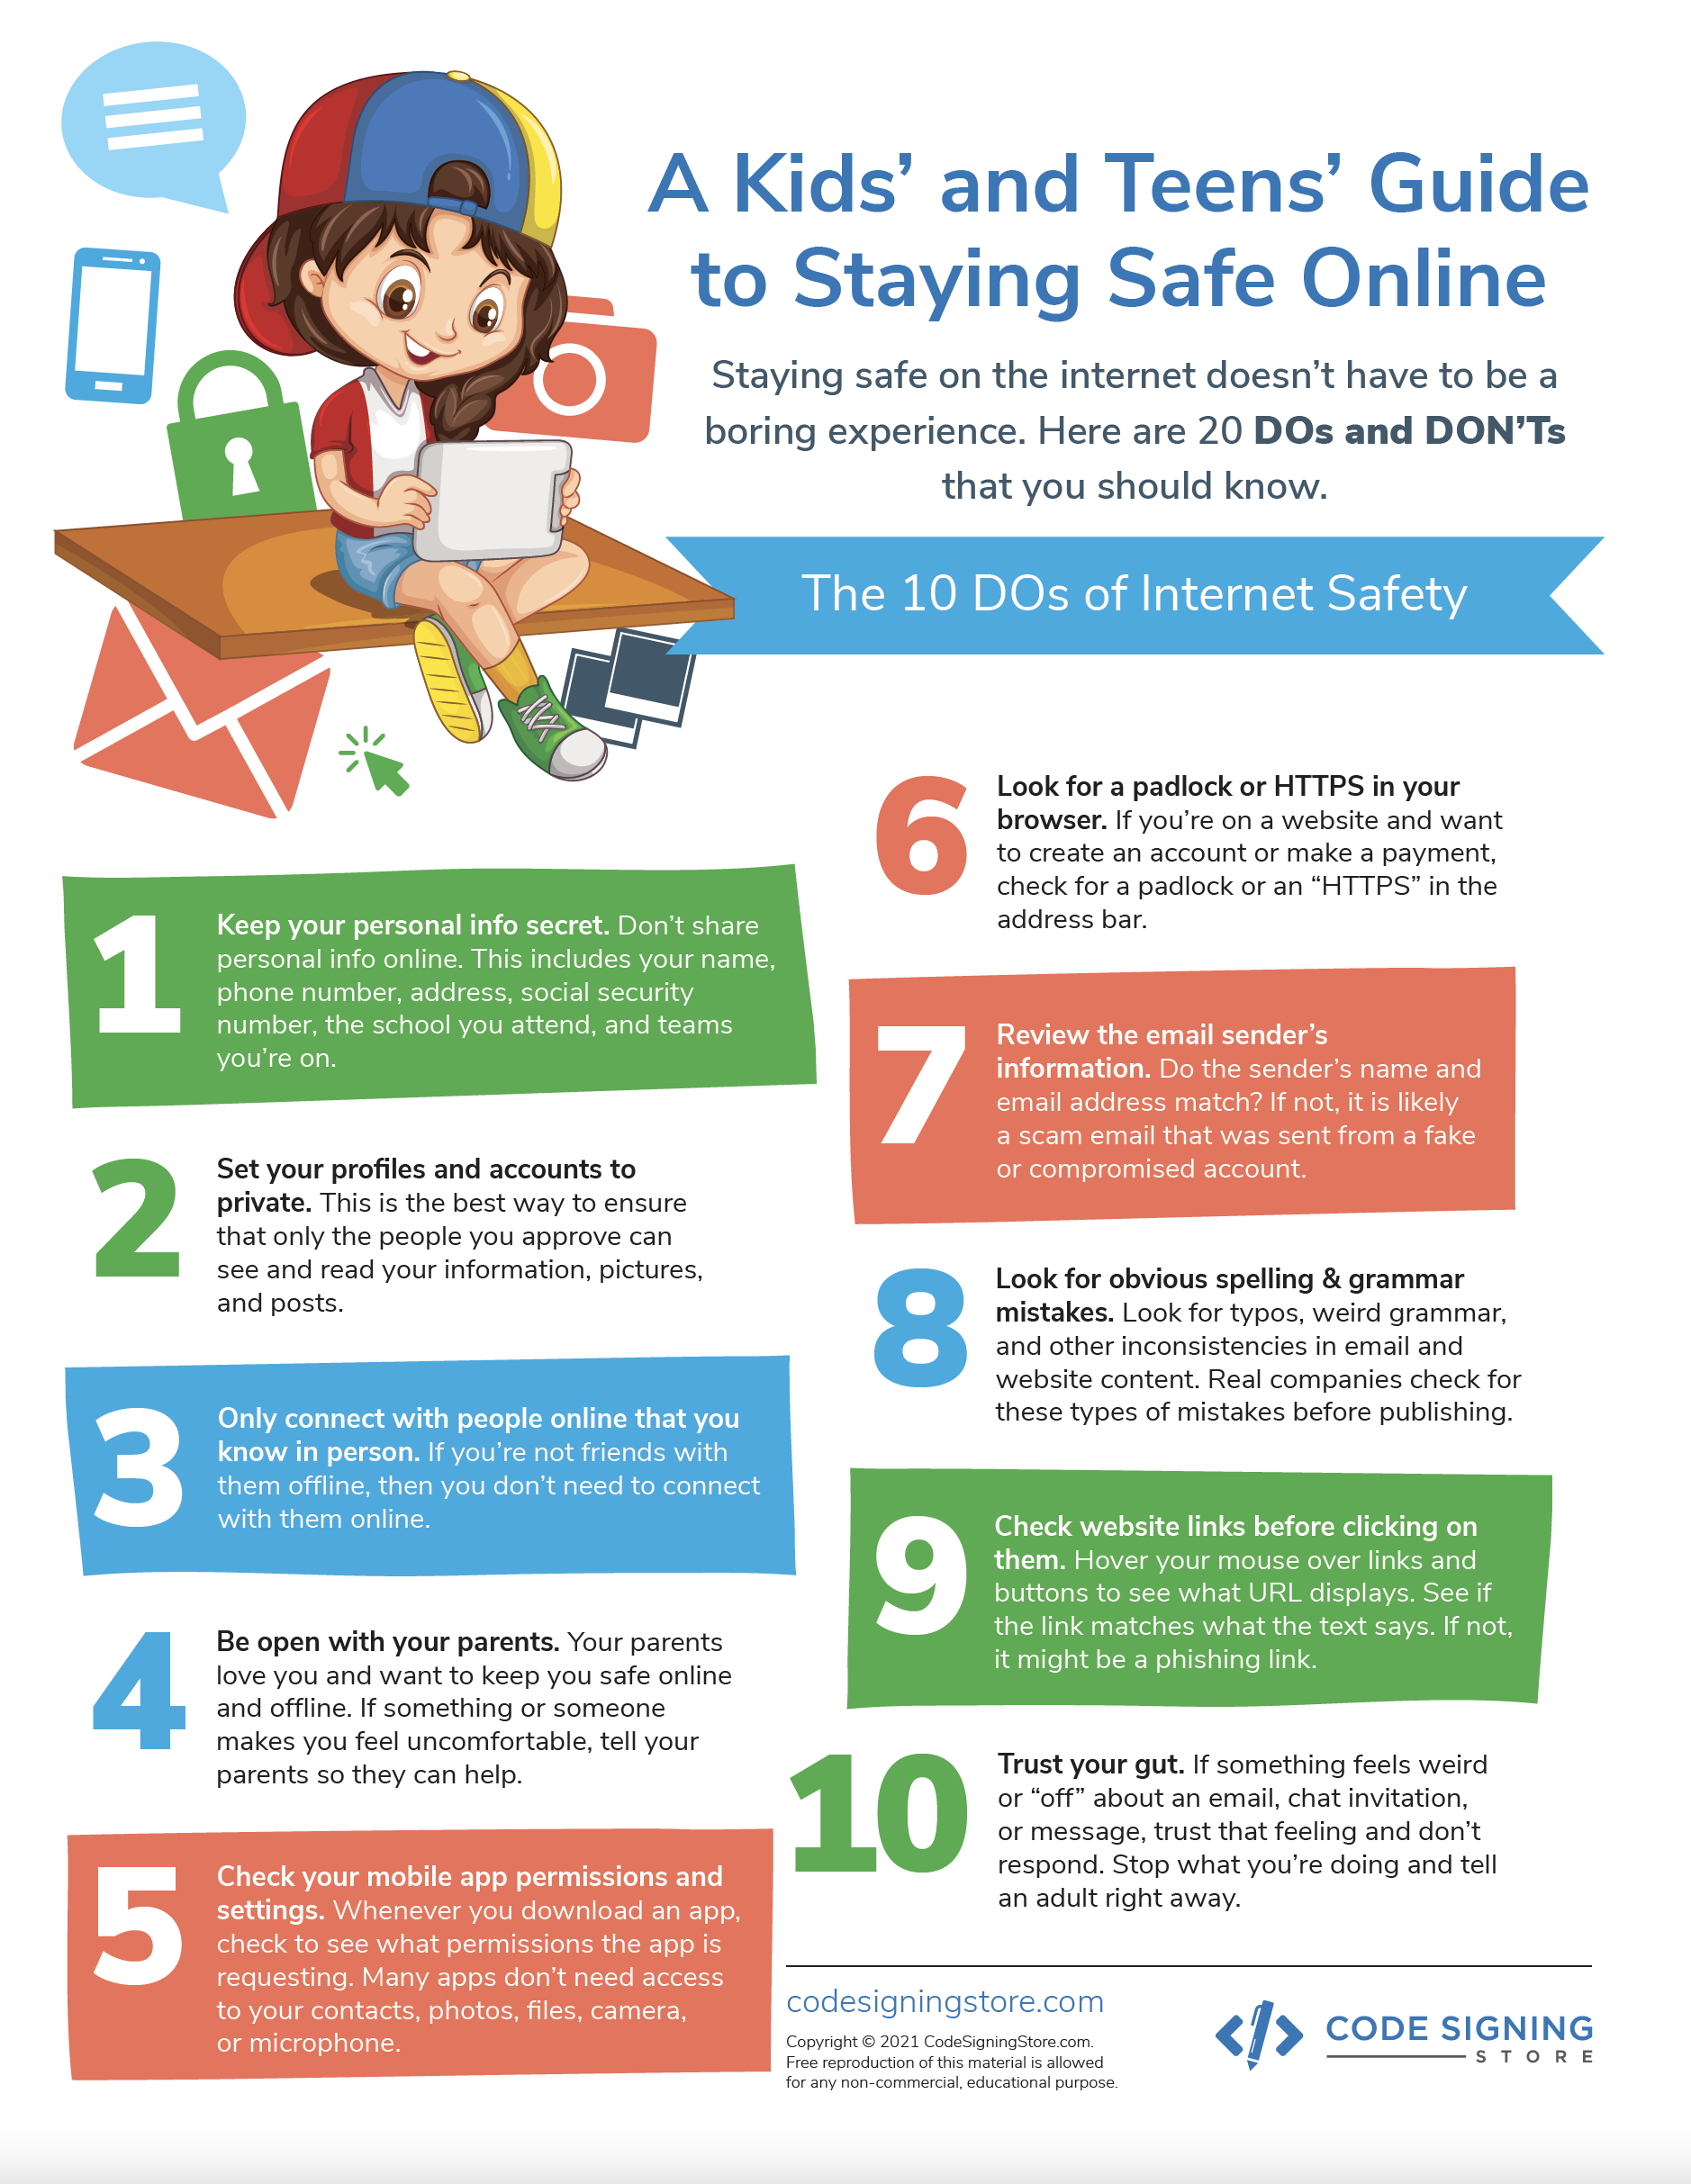 Dos and Donts of Internet Safety printout